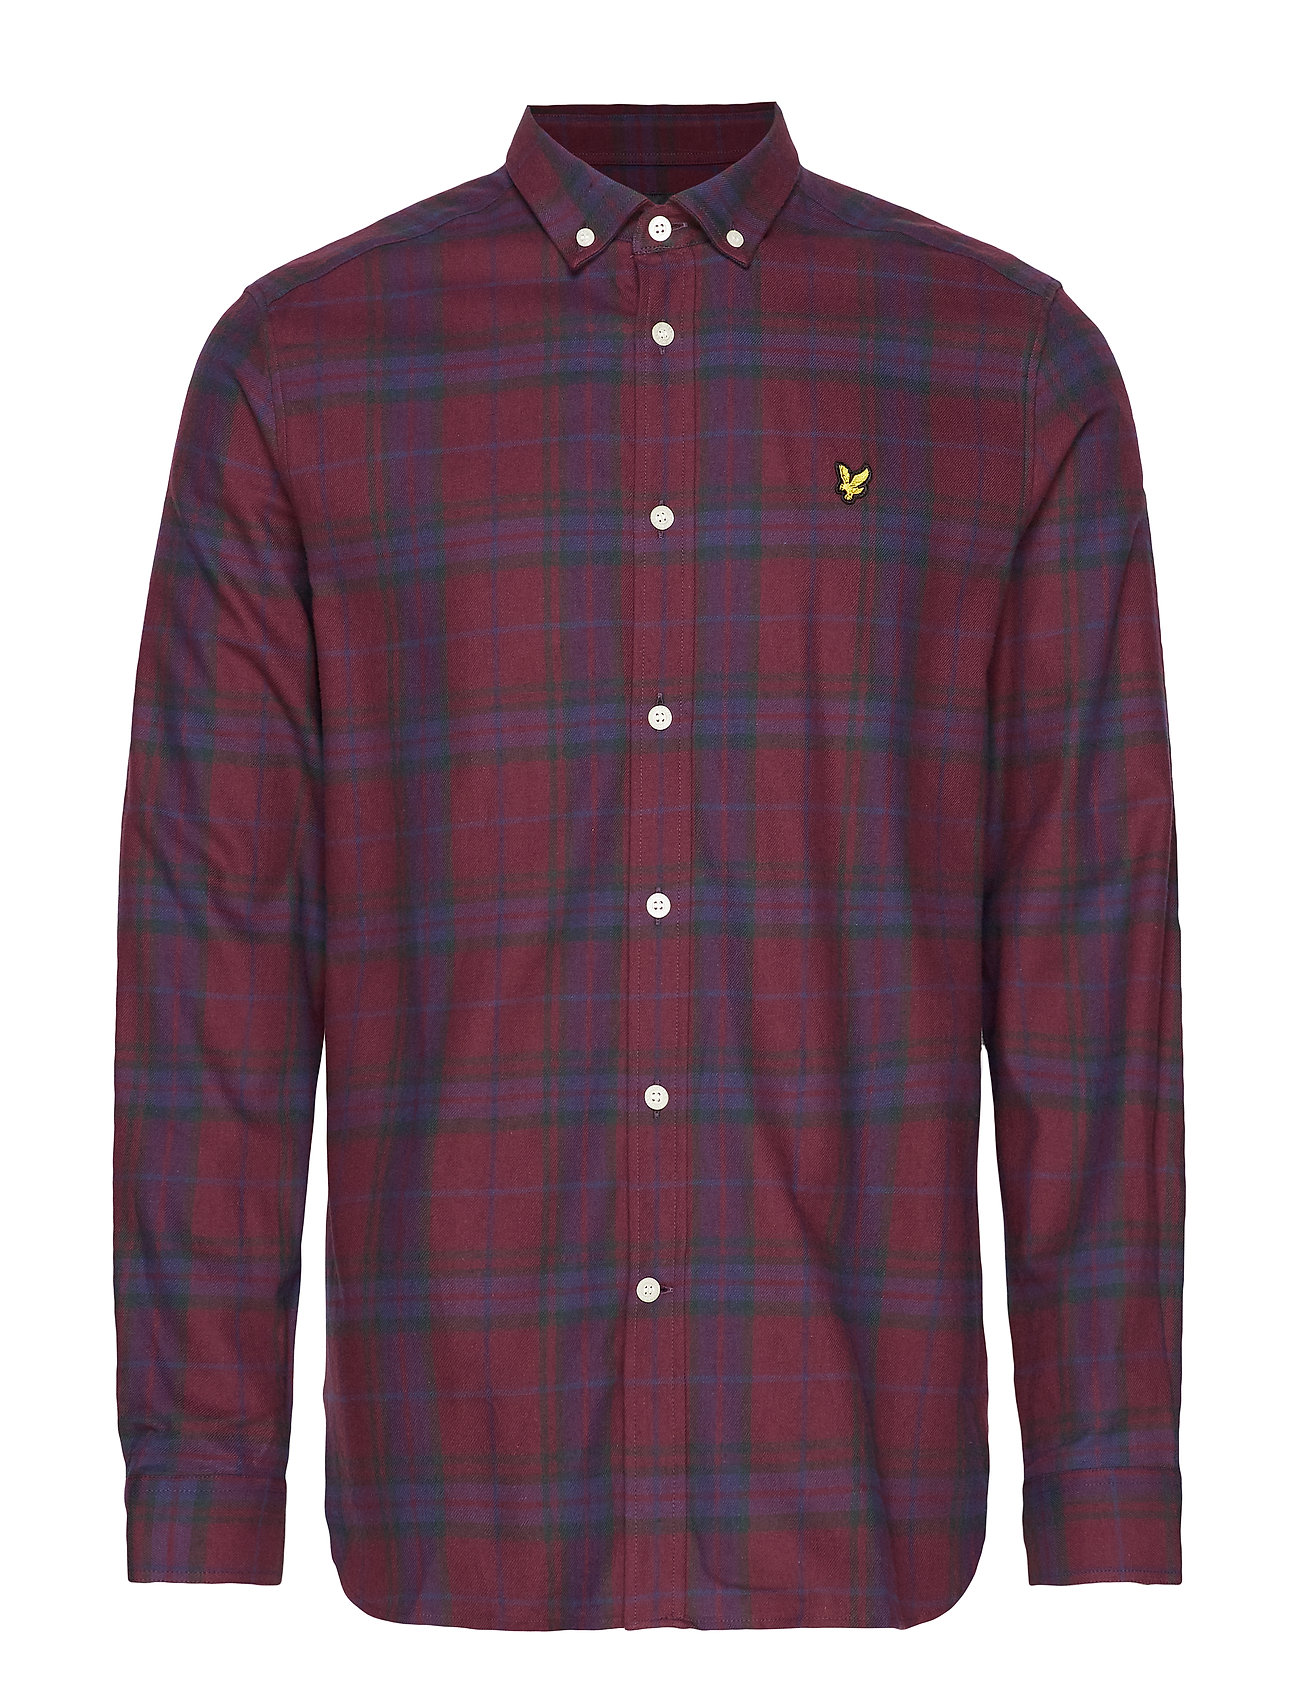 Lyle & Scott Check Flannel Shirt - BURGUNDY